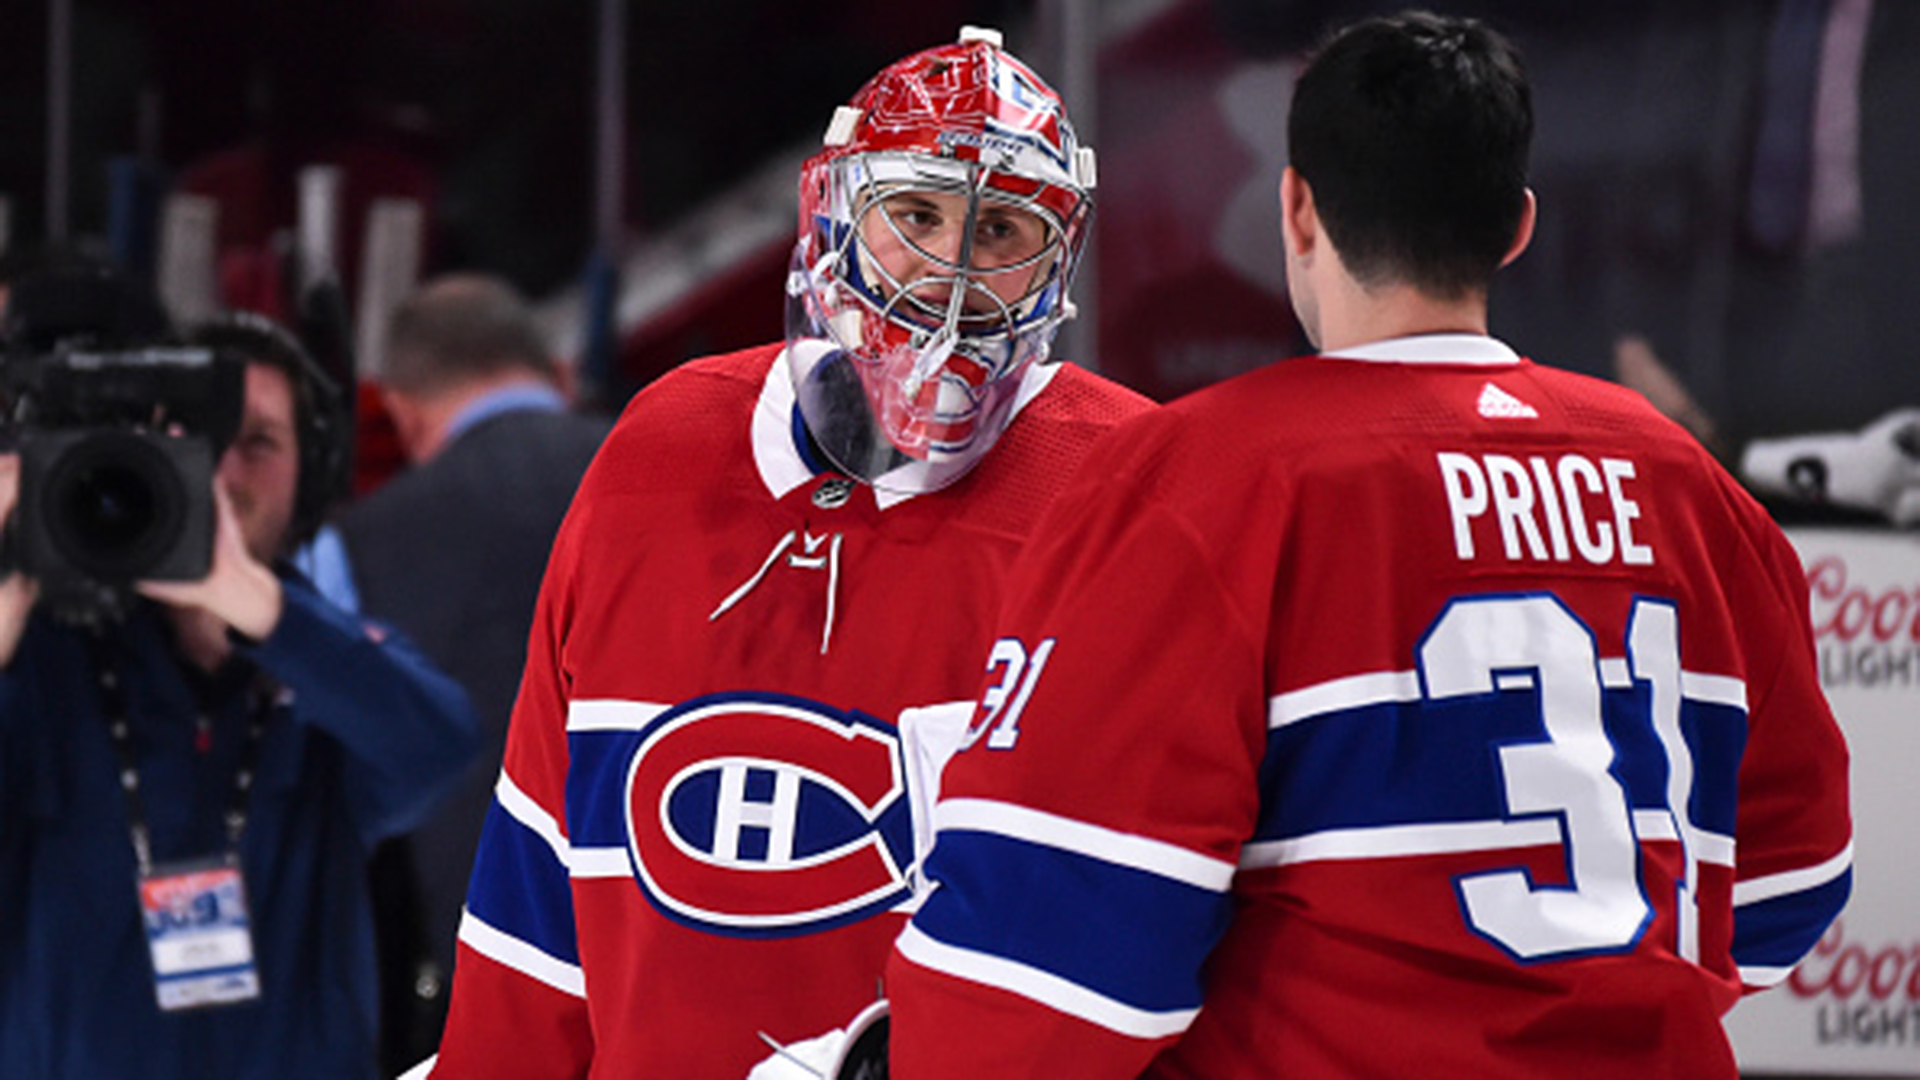 Primeau learning the ropes under 'big brother' Price's tutelage